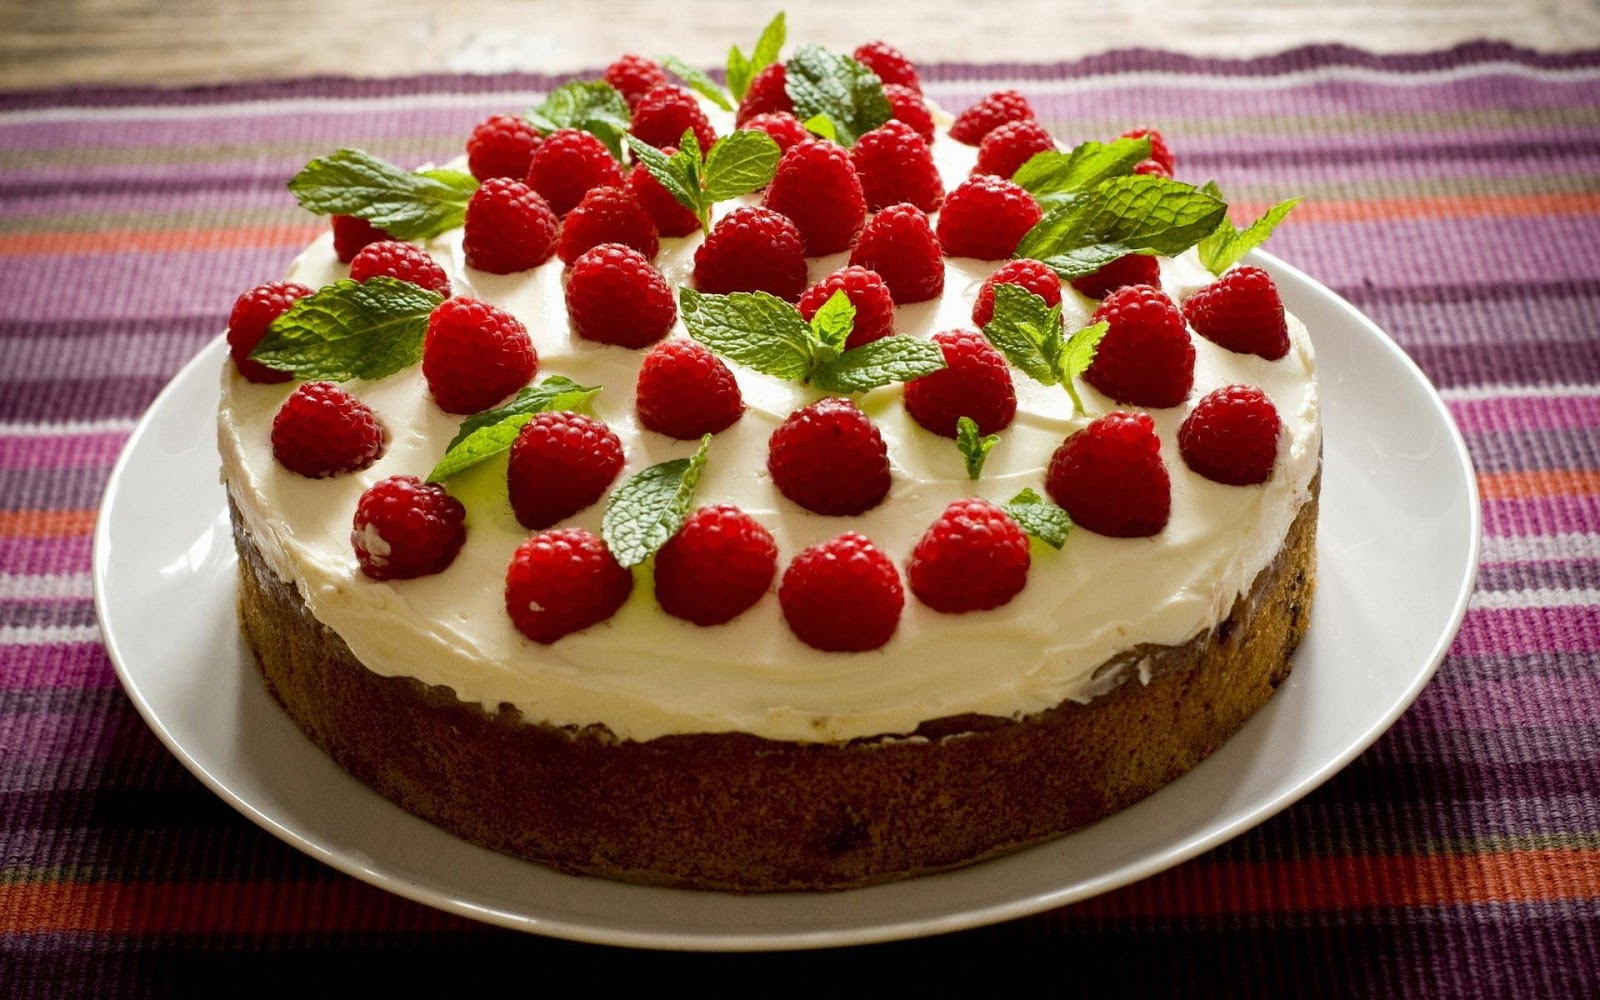 47575-cooking-raspberry-cake